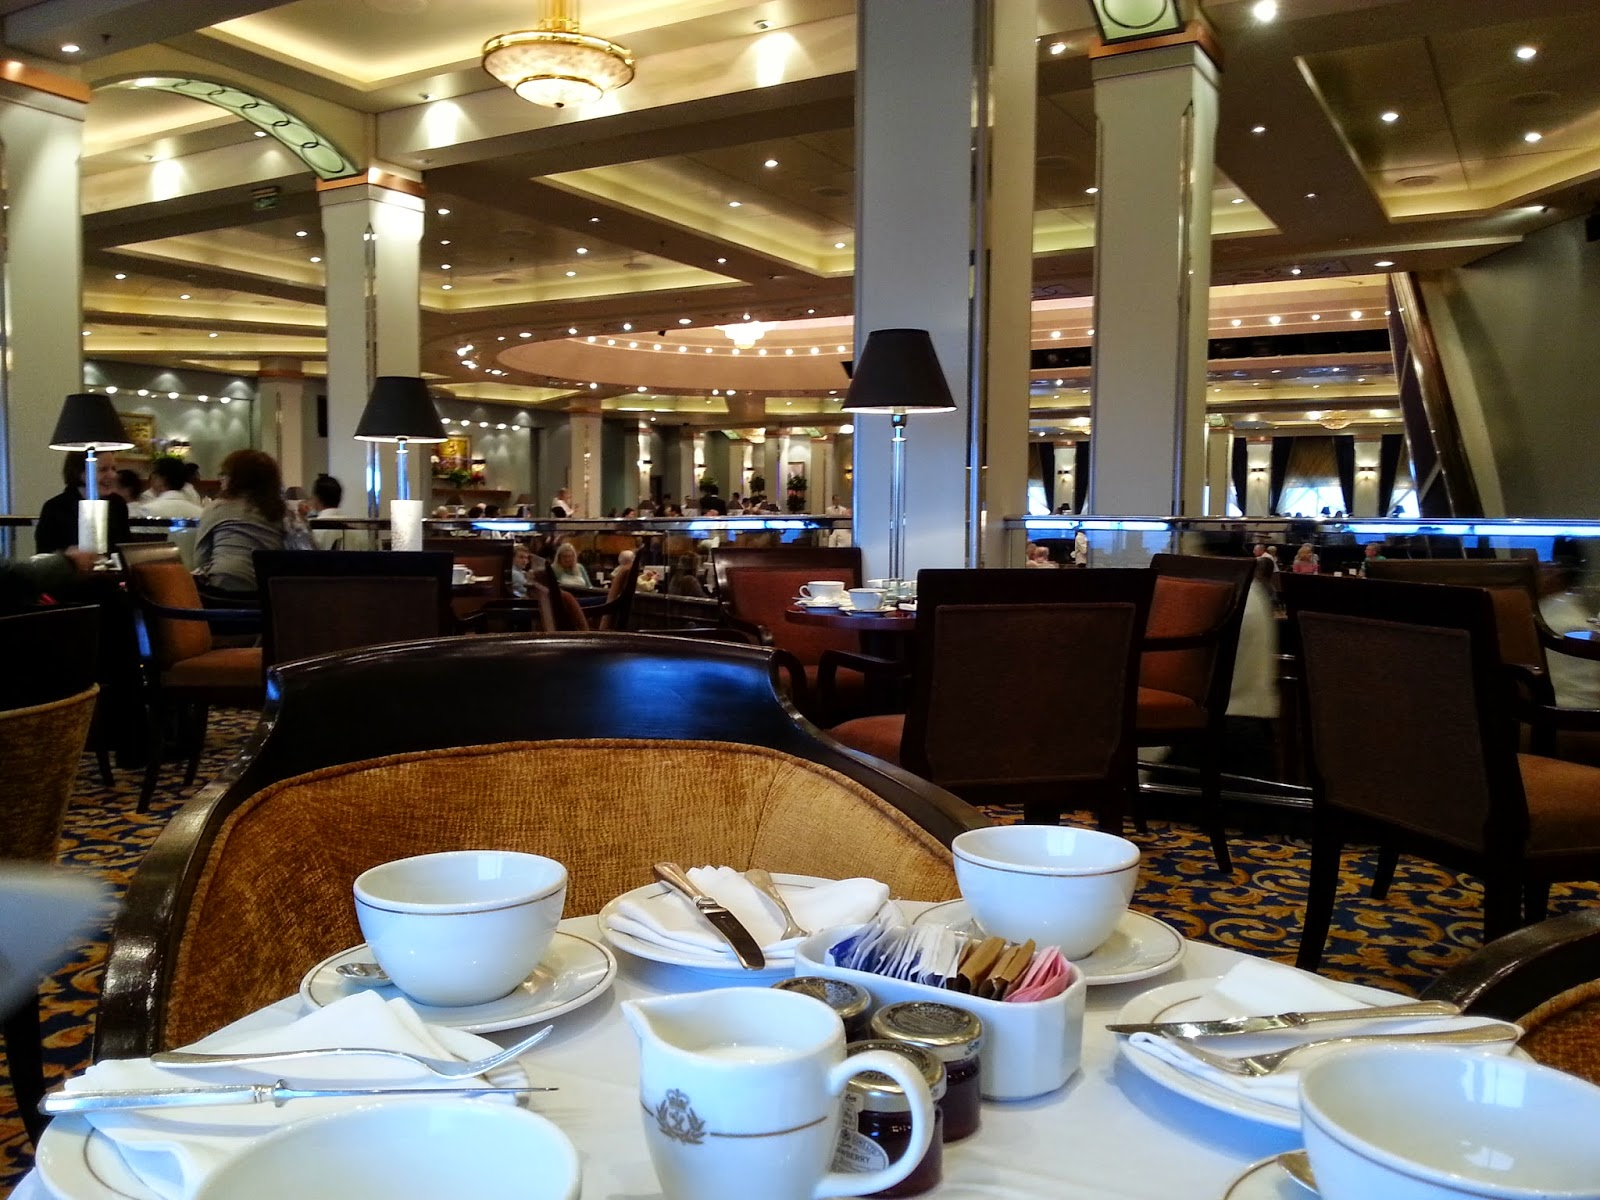 Queen Mary 2 - Photo Tour and Voyage Report (Part 1)